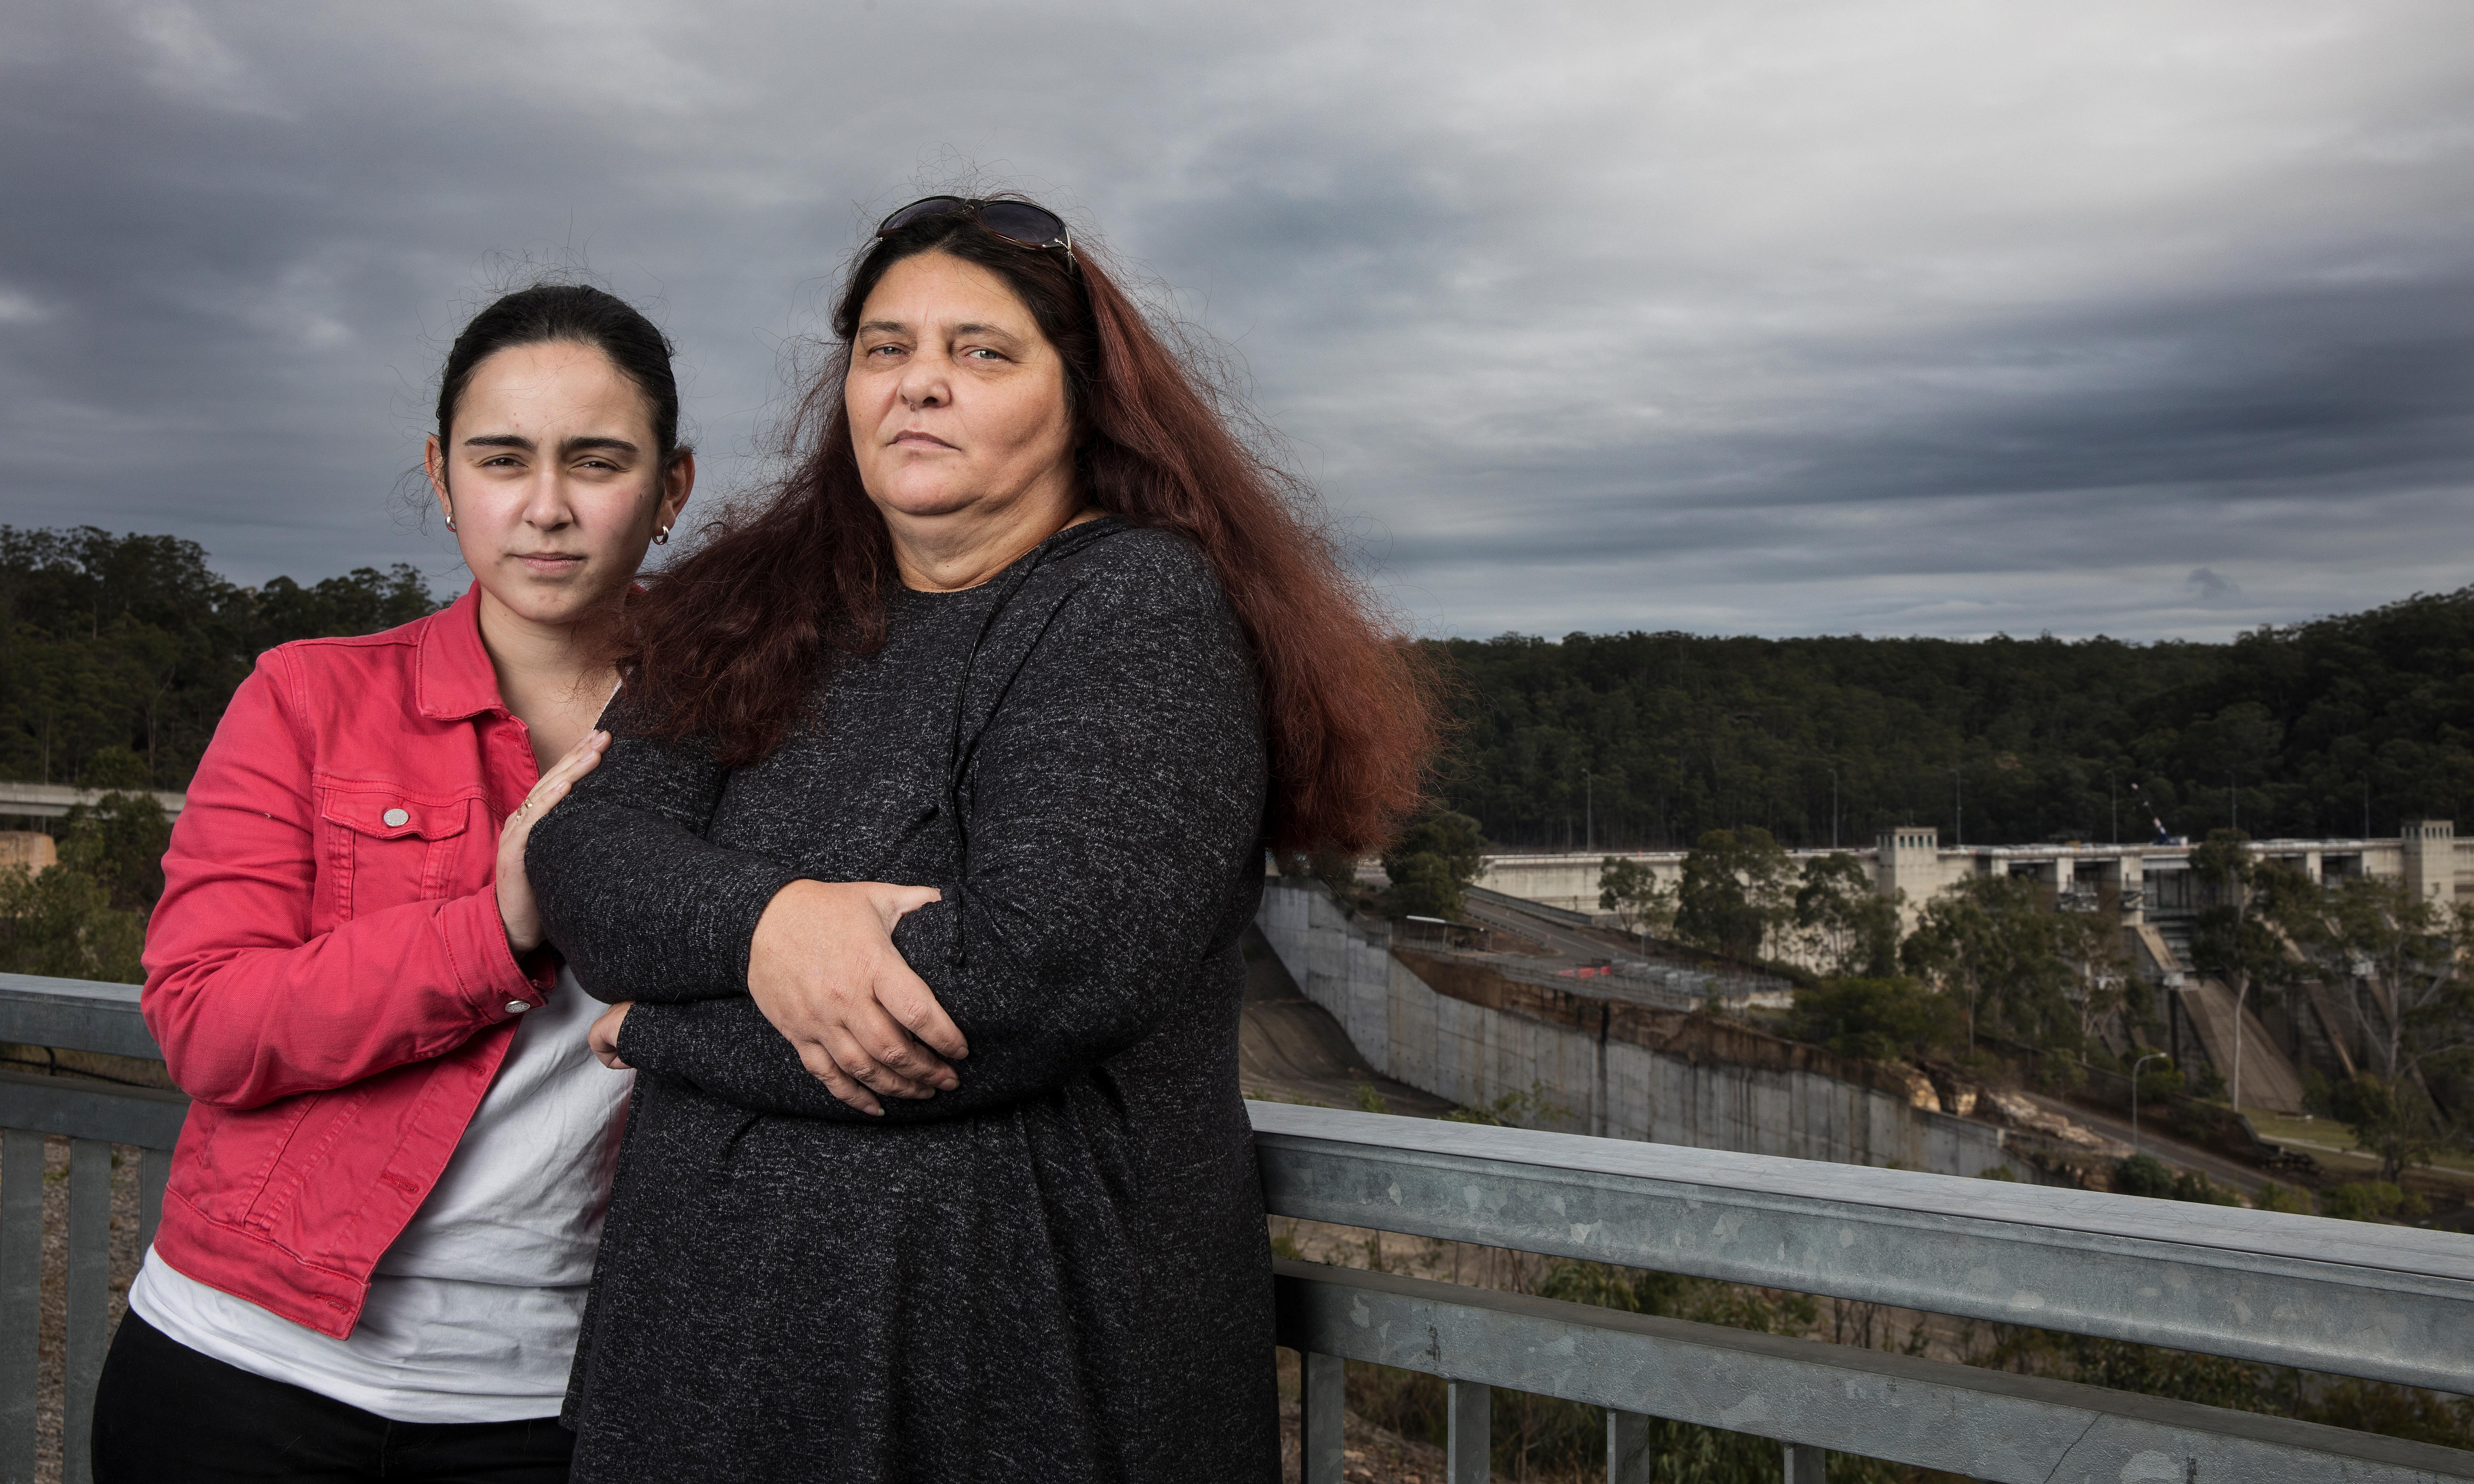 'So much that will be lost': concerns grow over plan to raise Warragamba dam wall